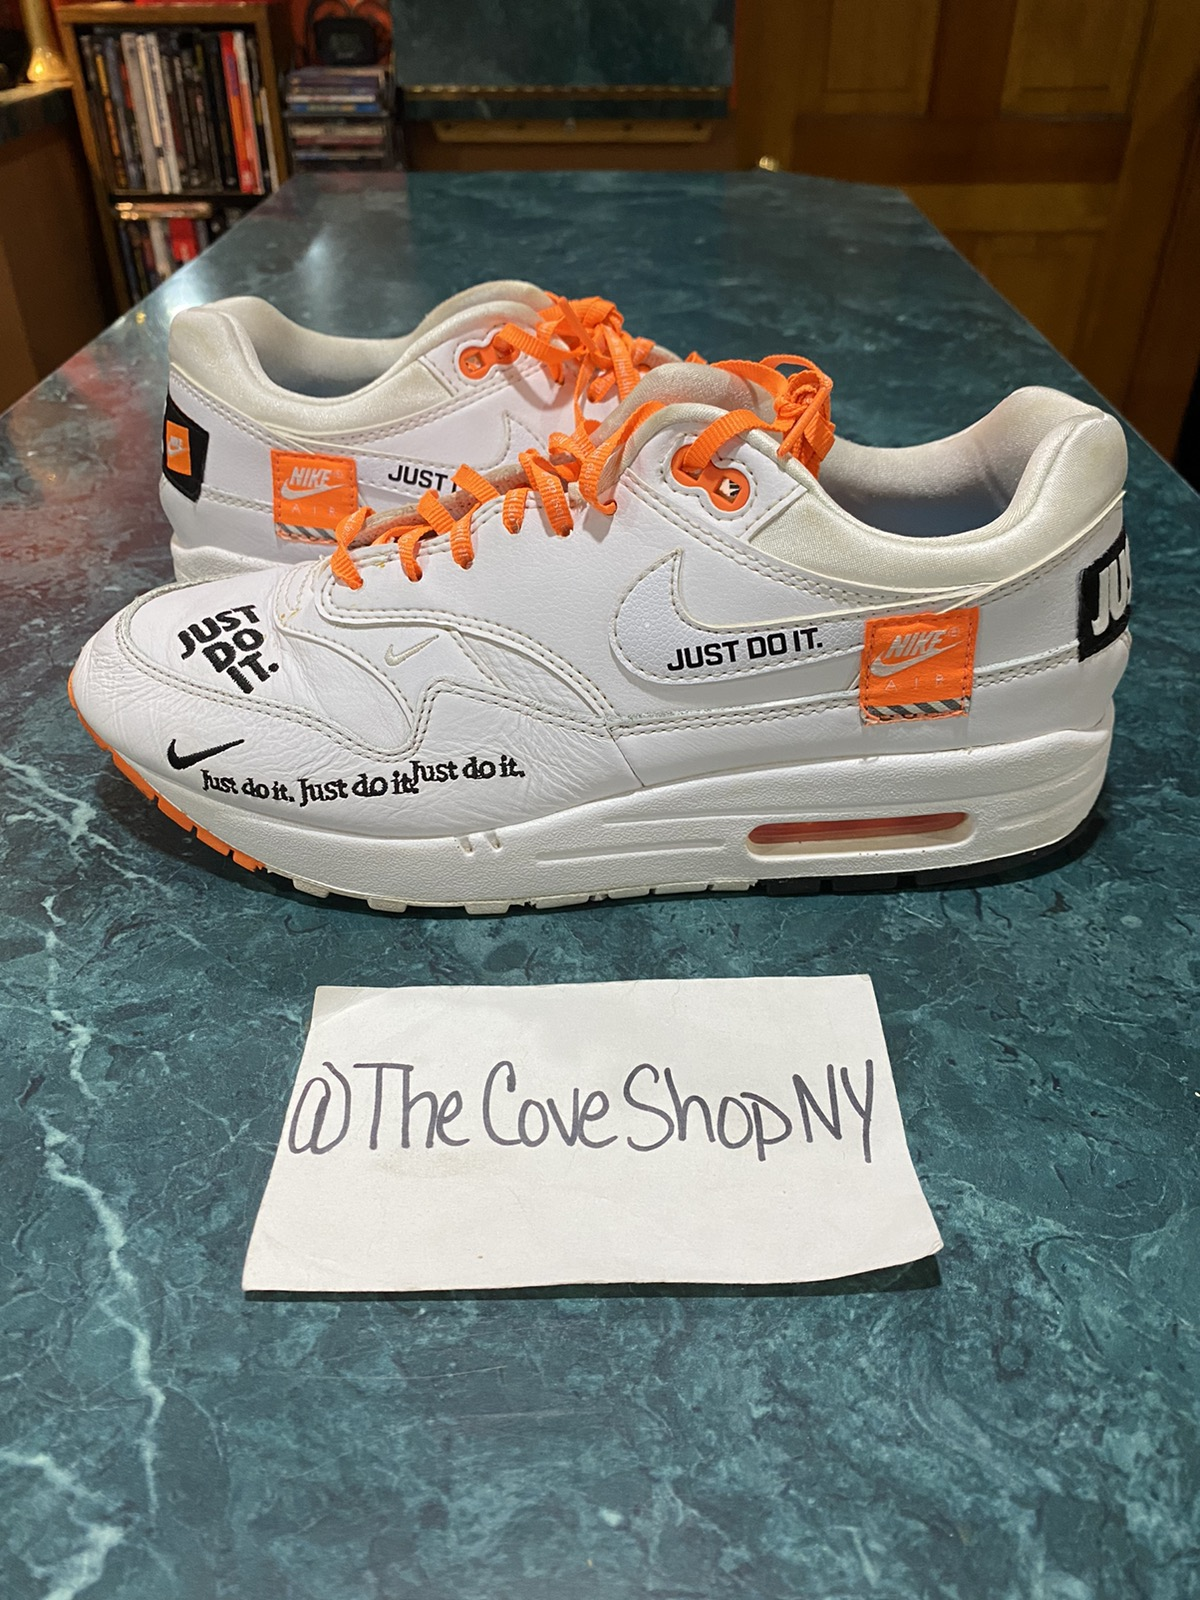 Nike Nike Air Max 1 Just Do It size 9W 7.5/10 100% authentic